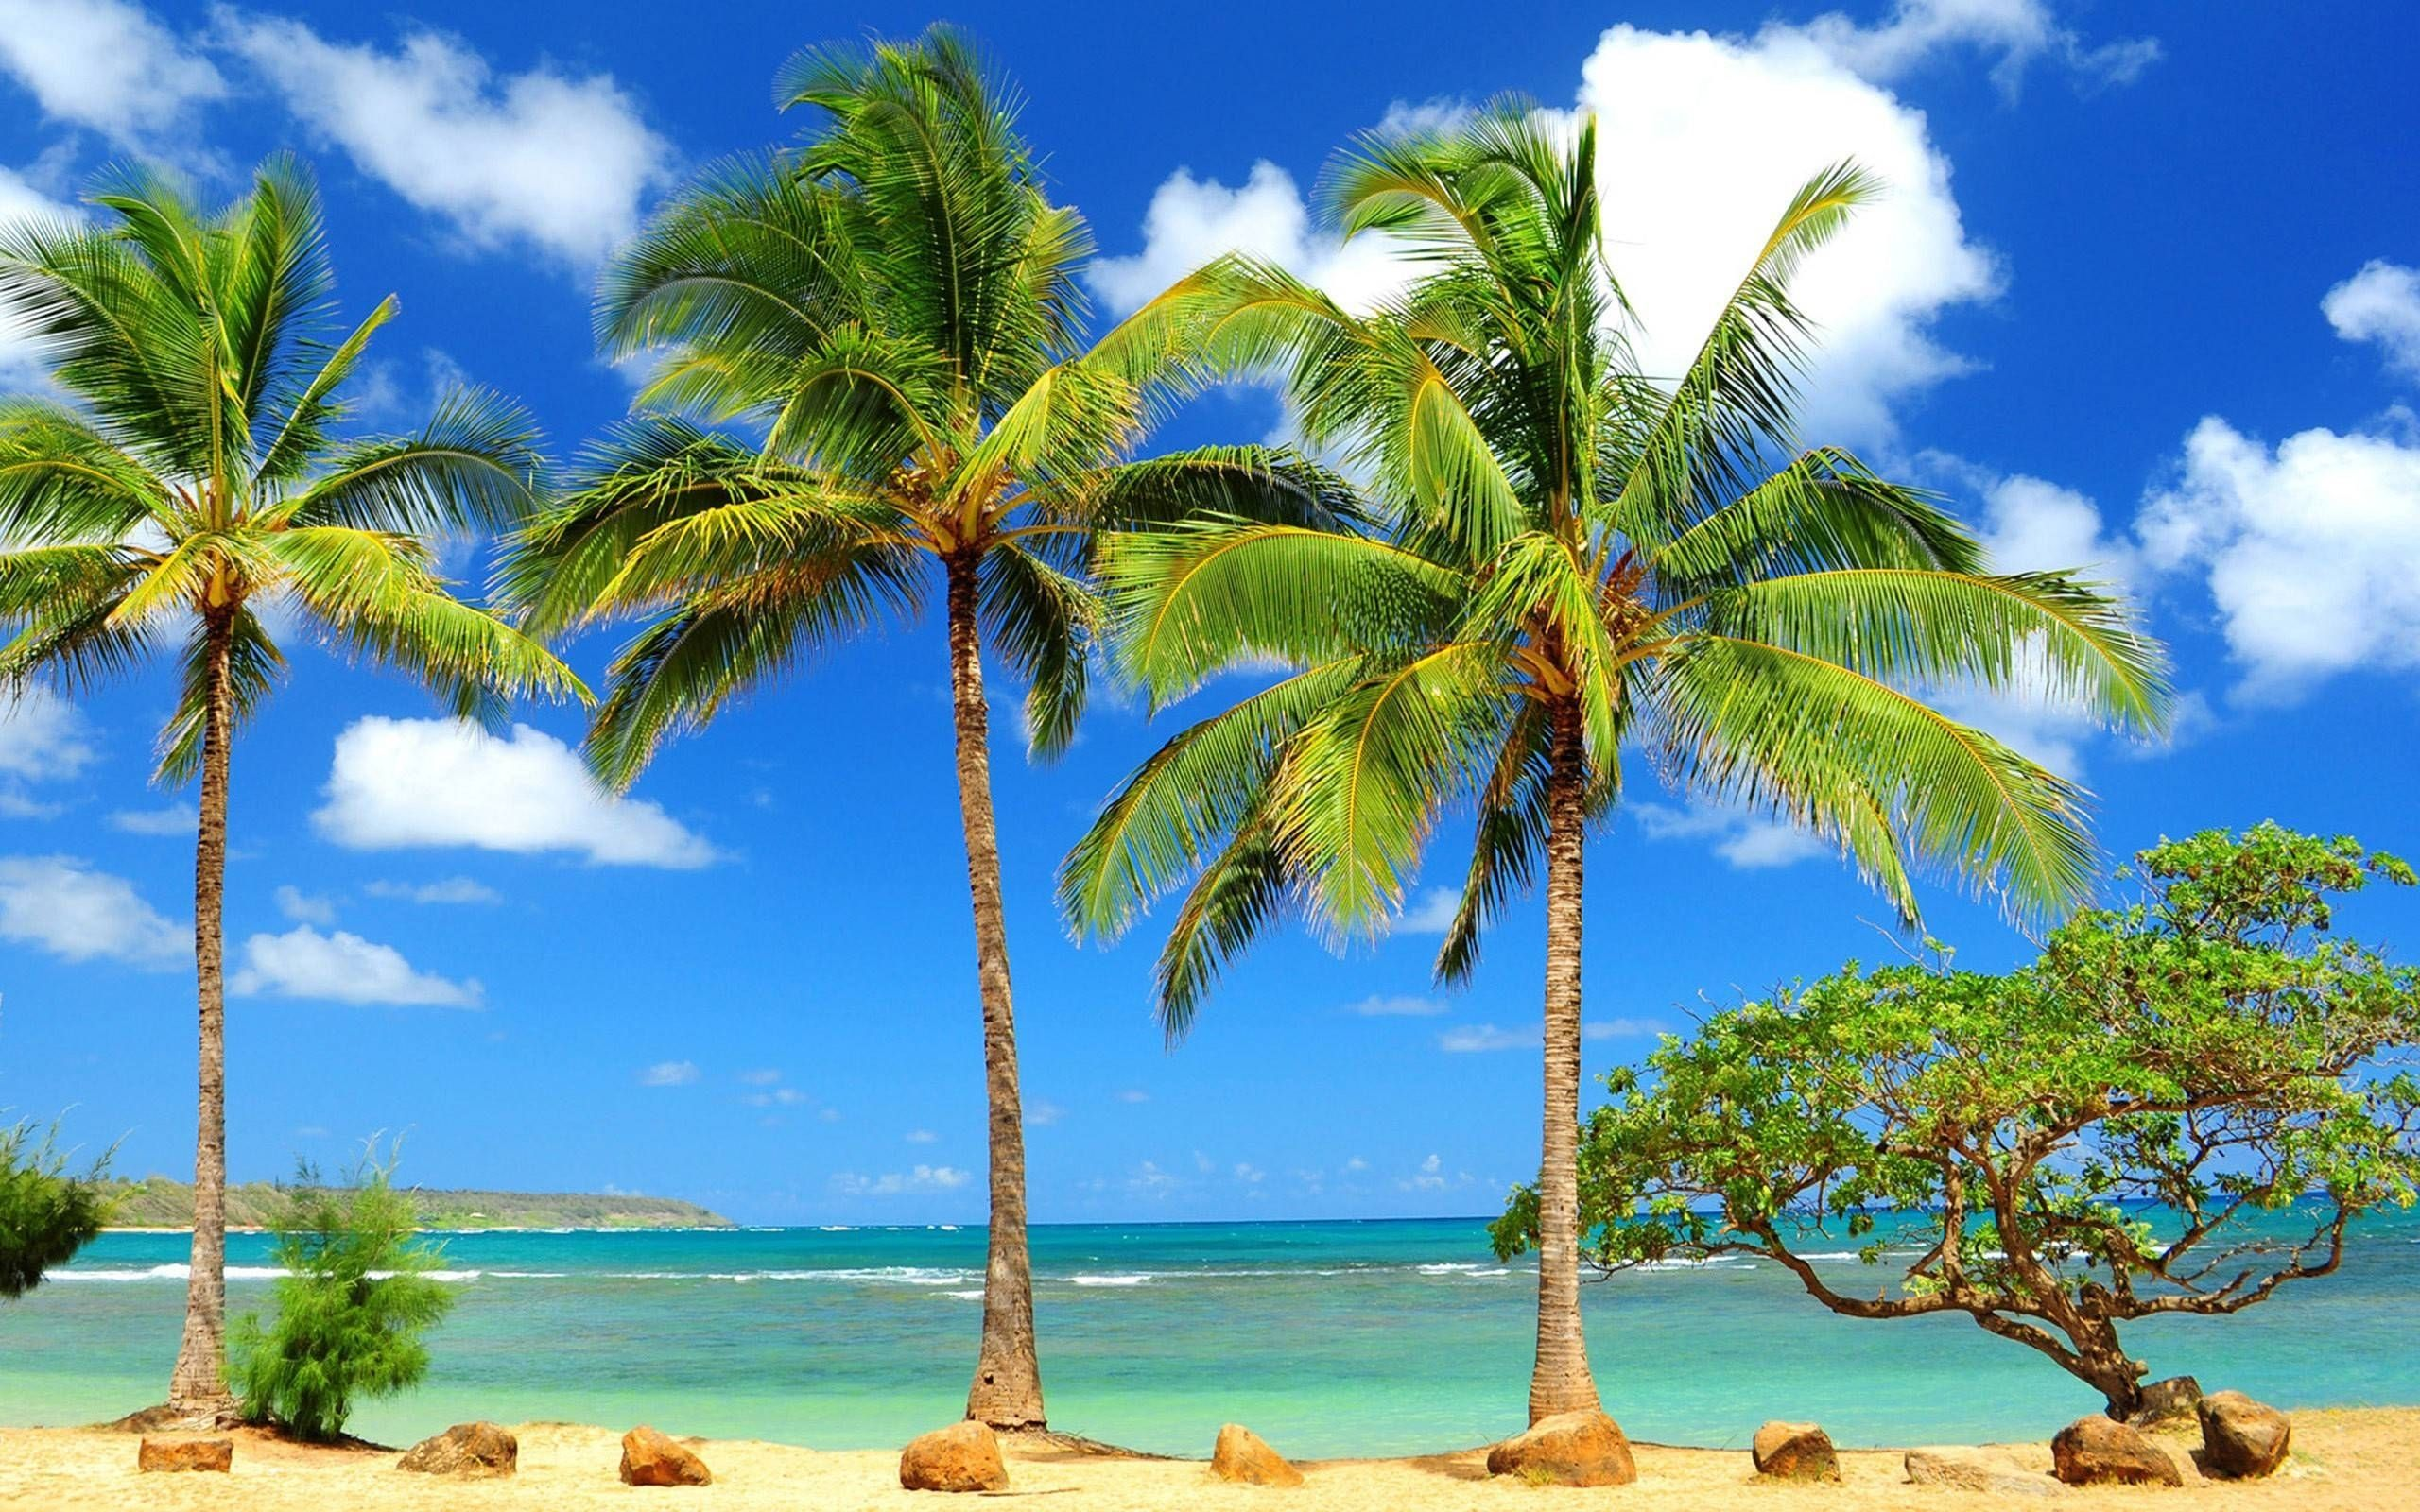 10 Best Palm Trees Hd Wallpaper Full Hd 1080p For Pc Desktop Beach Wallpaper Palm Trees Wallpaper Palm Tree Images